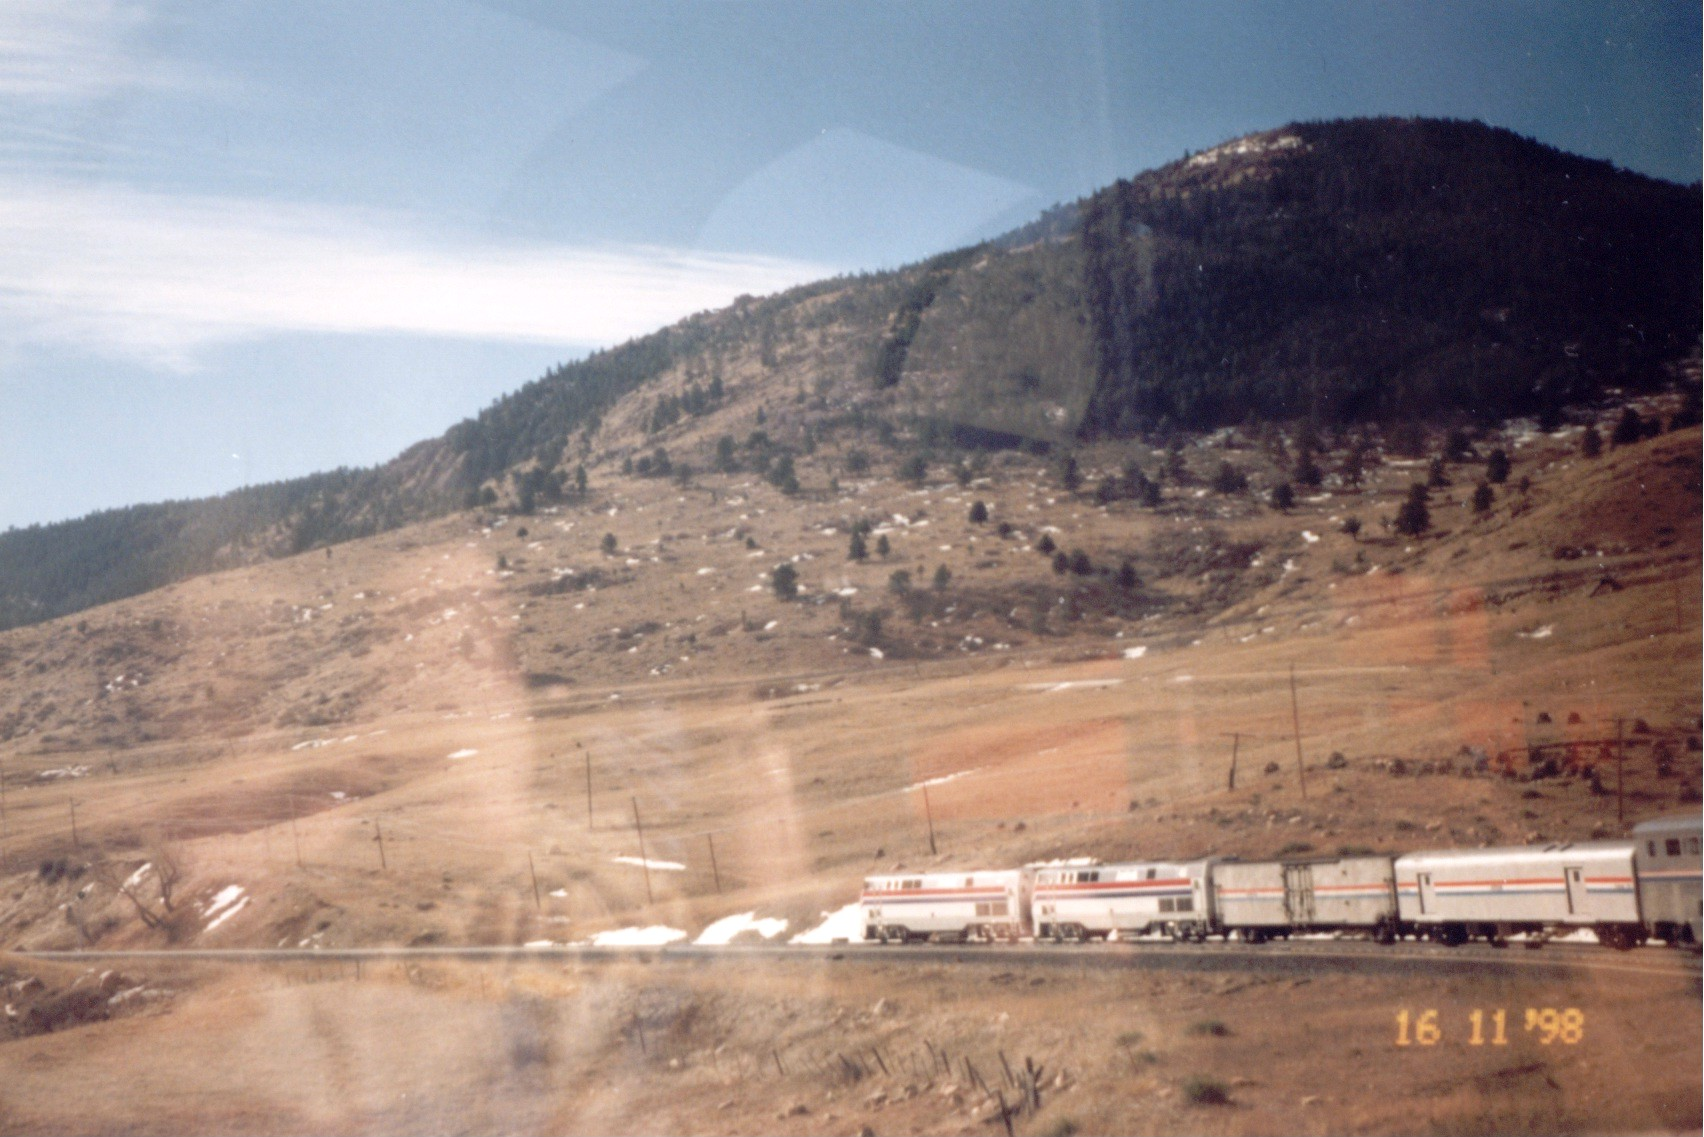 colorado_amtrak03.jpg